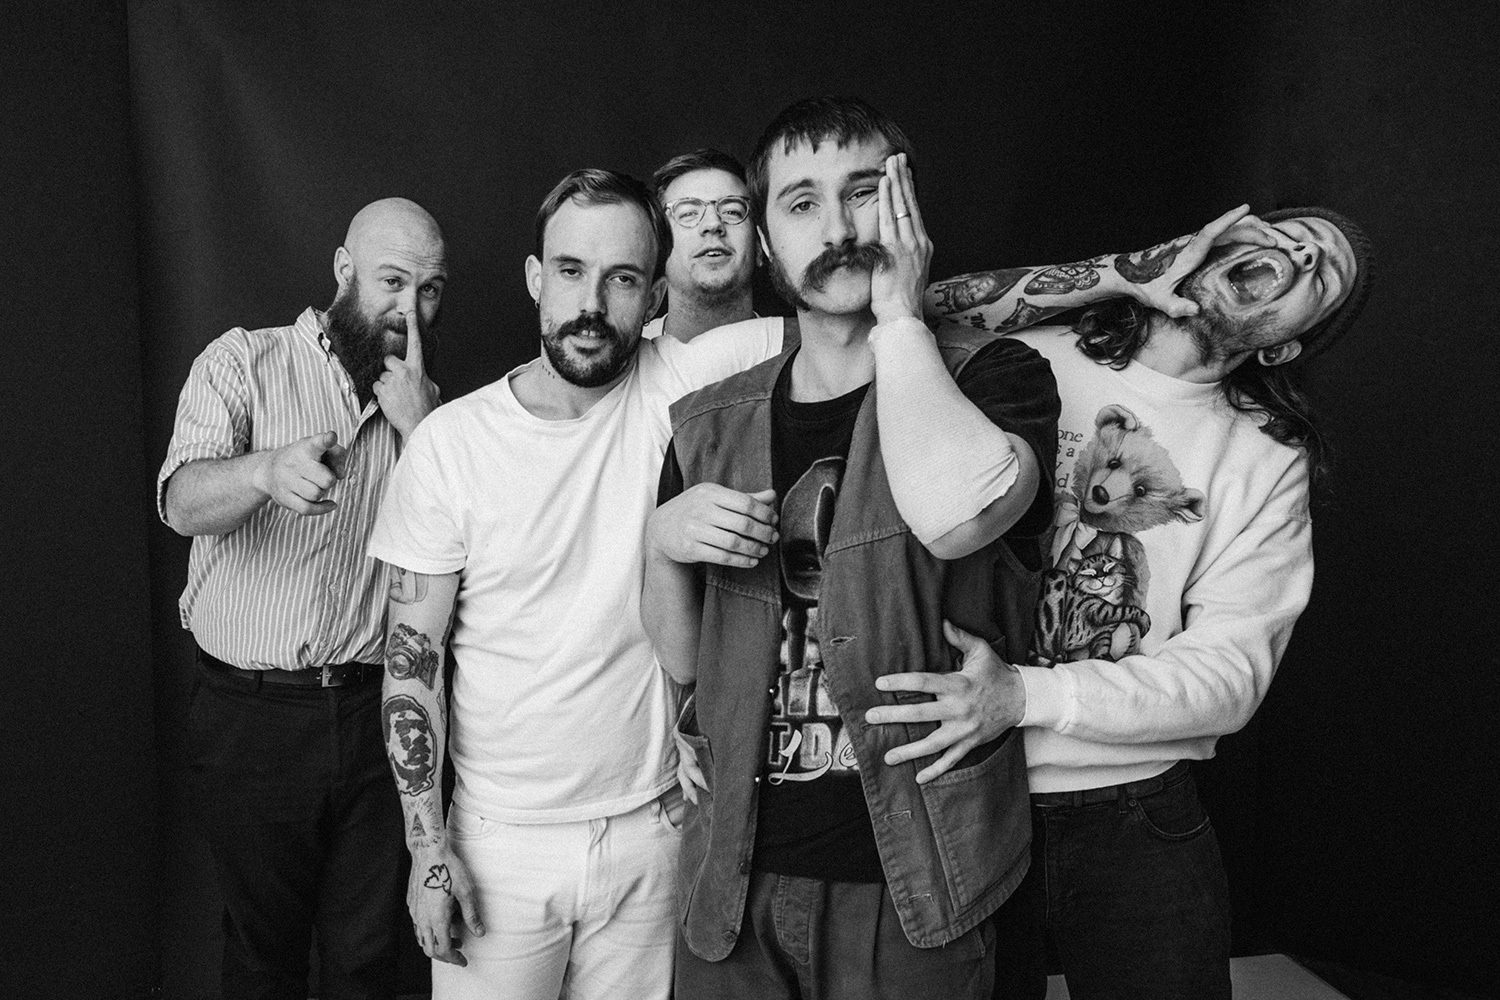 Idles are hitting the road for some UK shows in March and April 2019